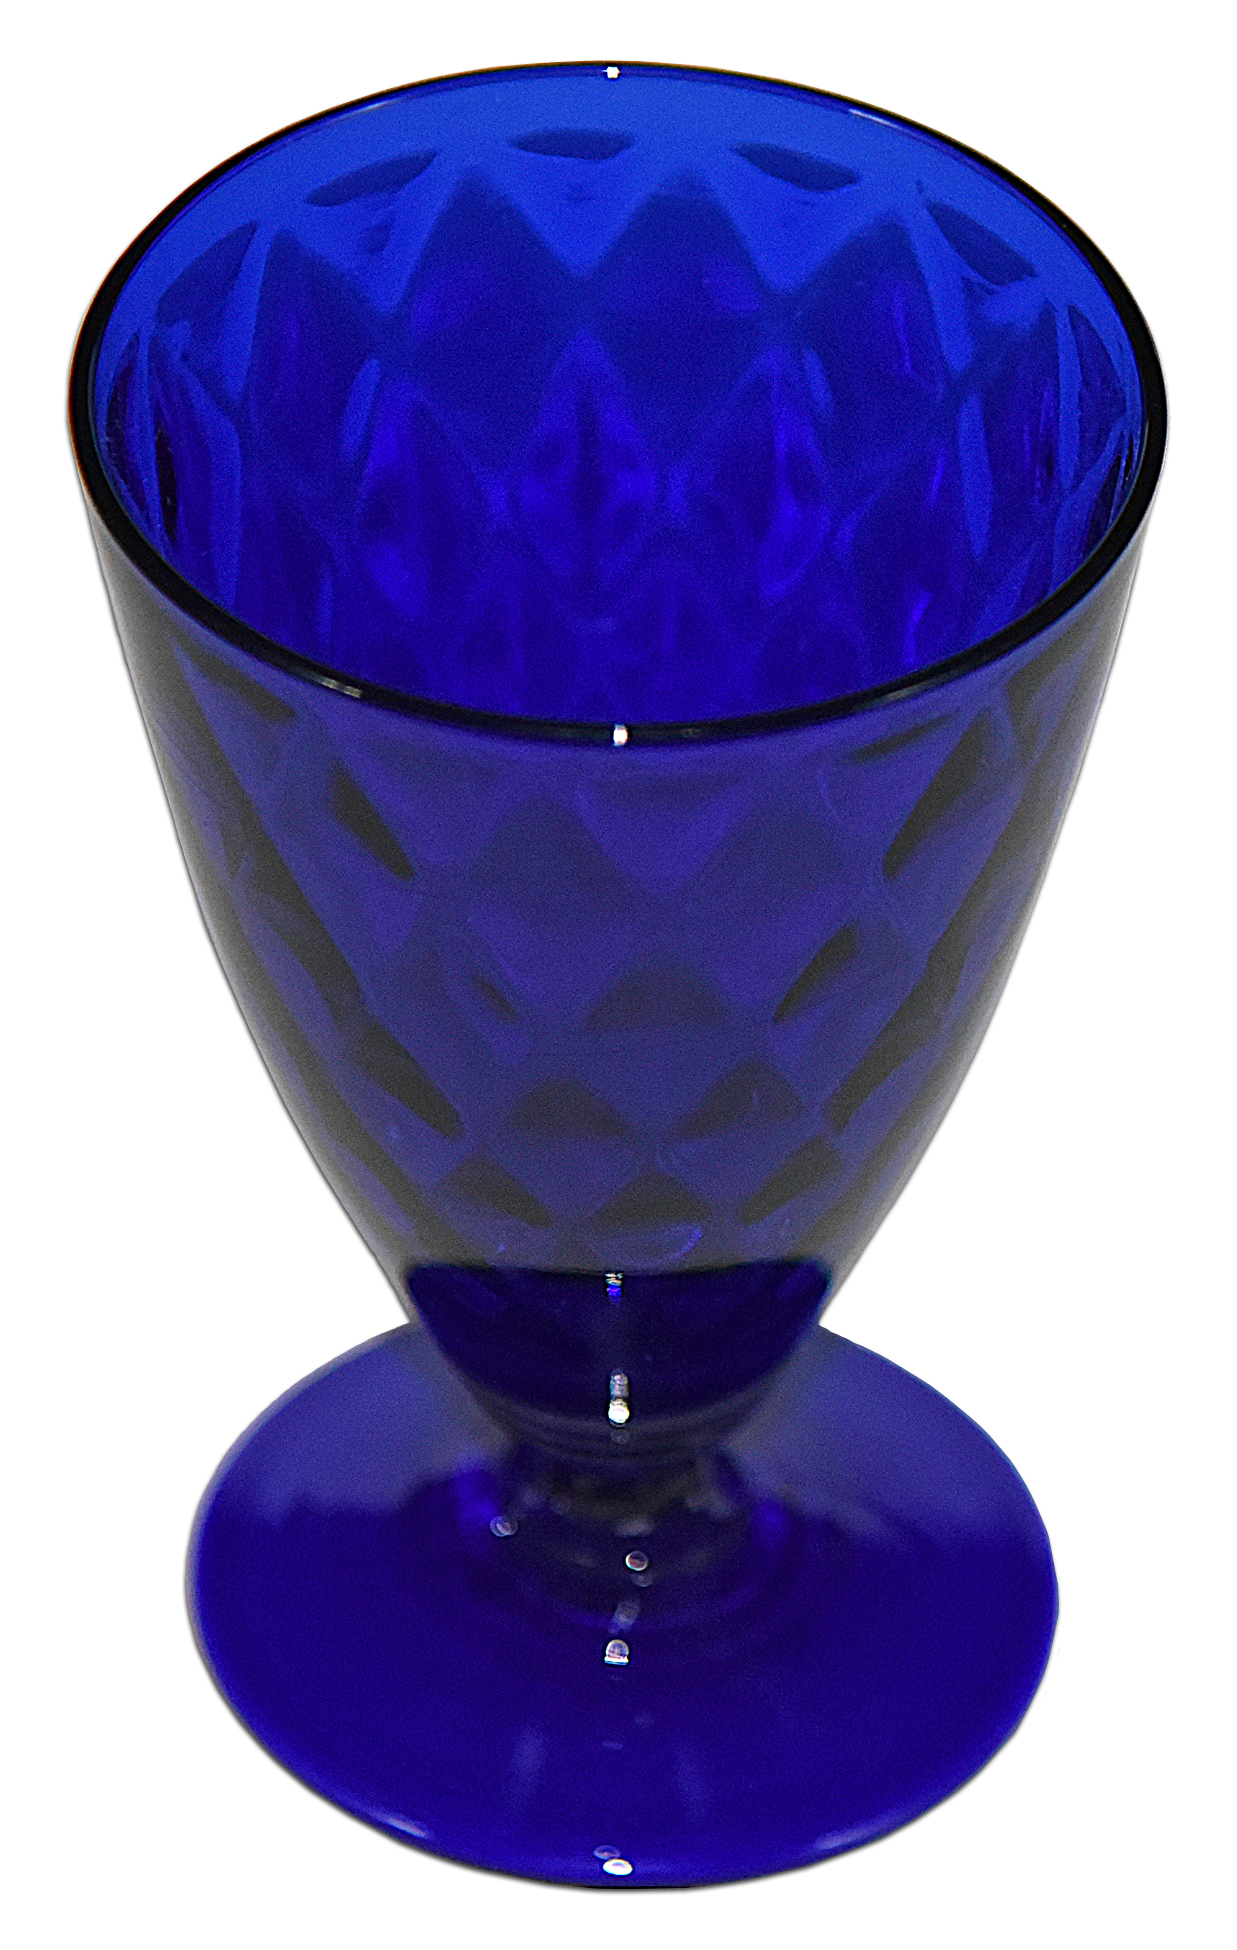 FENTON DIAMOND OPTIC ROYAL BLUE FOOTED TUMBLER LOOKING DOWN